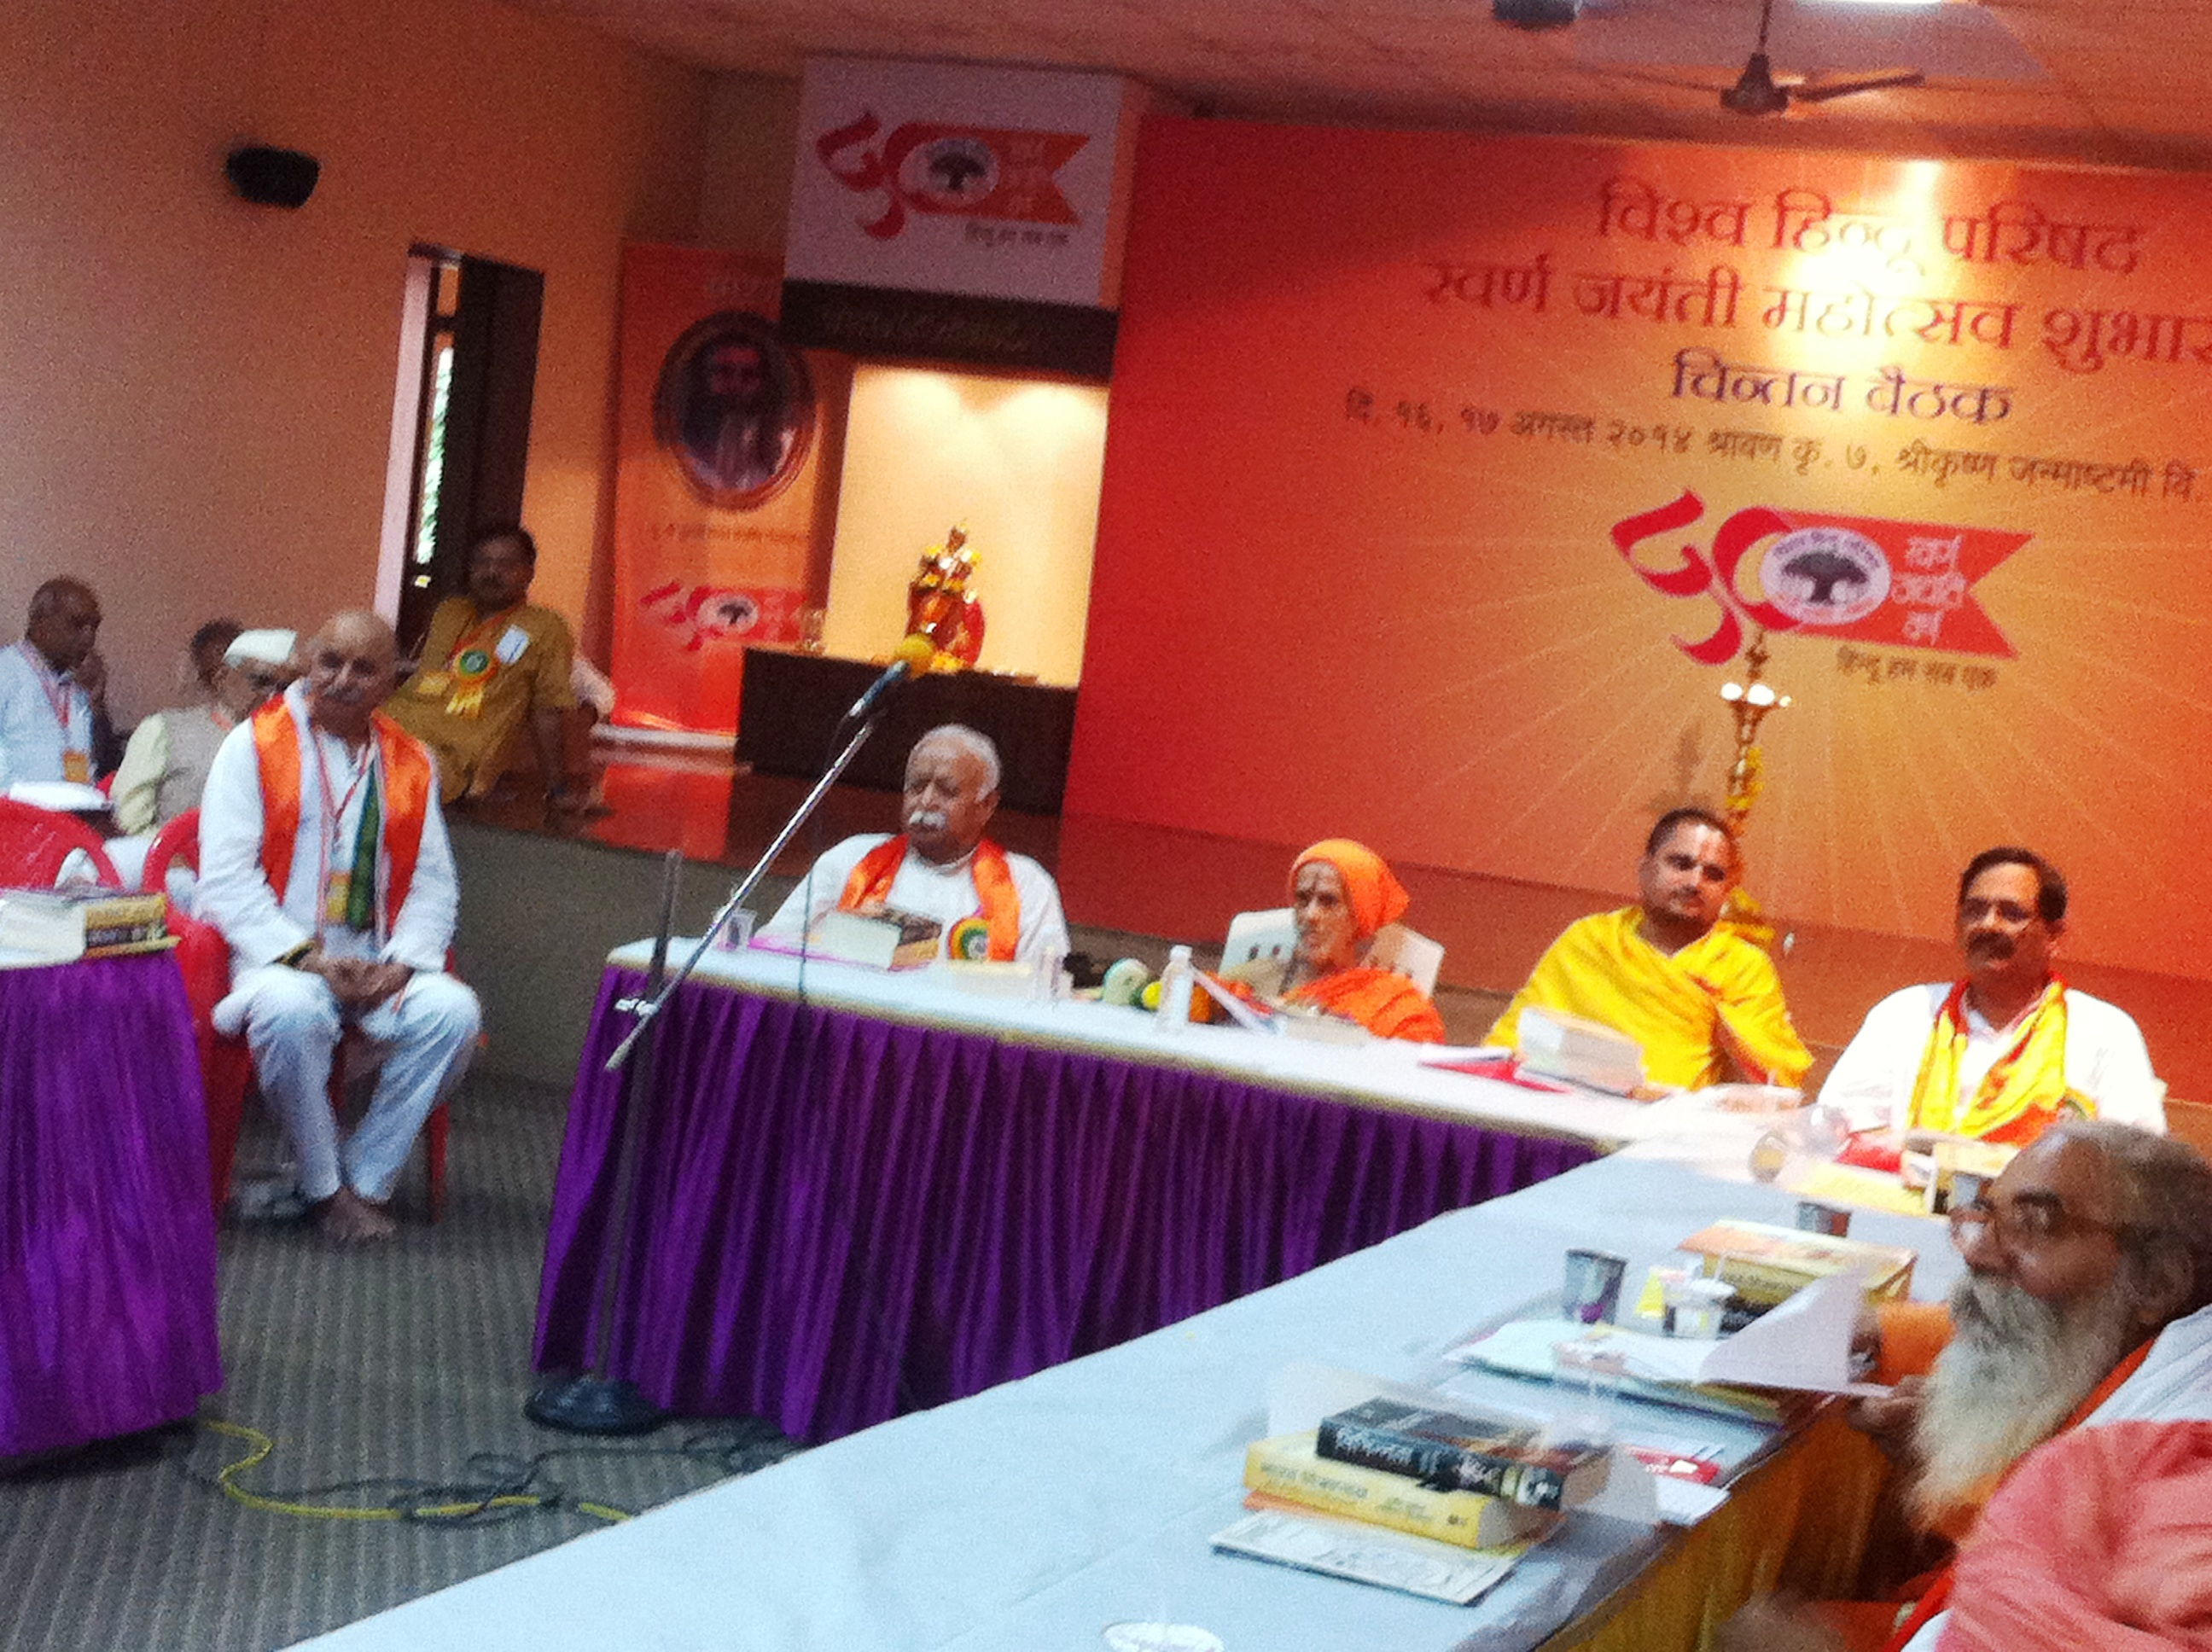 VHP meeting at Sandipani Ahsram, Mumabi August 17-2014